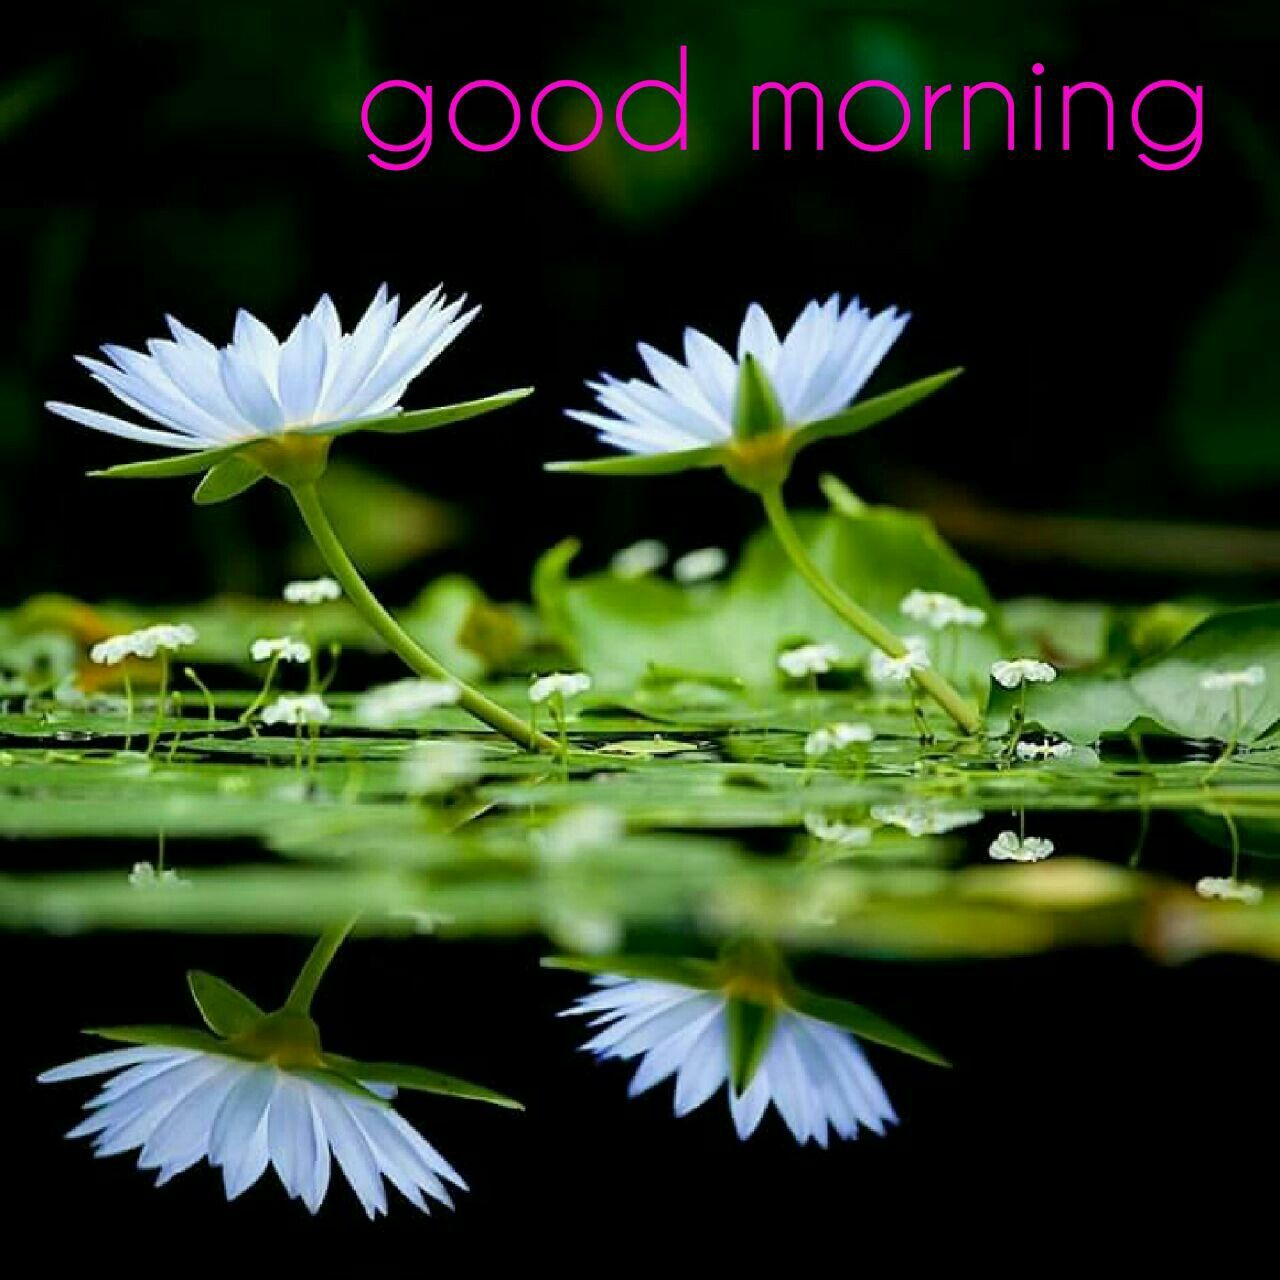 Good Morning Flower Images Free Download Good Morning